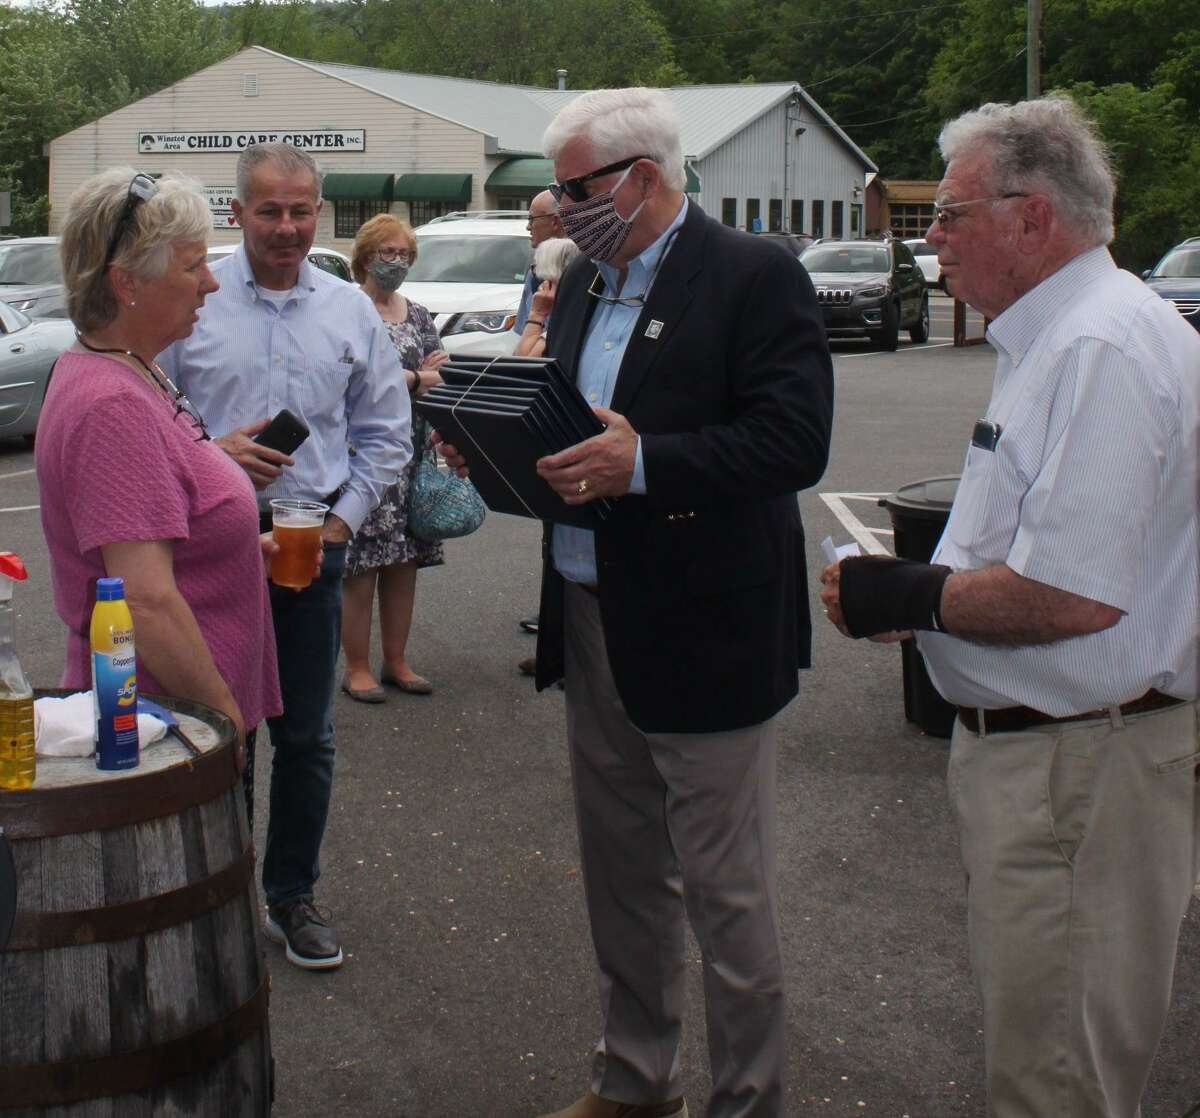 Winchester's Democratic Town Committee on May 23 presented its Legacy Award Recognition Program at Little Red Barn Brewers on Lake Street. Mayor Candy Perez, left, chats with Congressman John Larson, right, and committee member George Closson, far right.